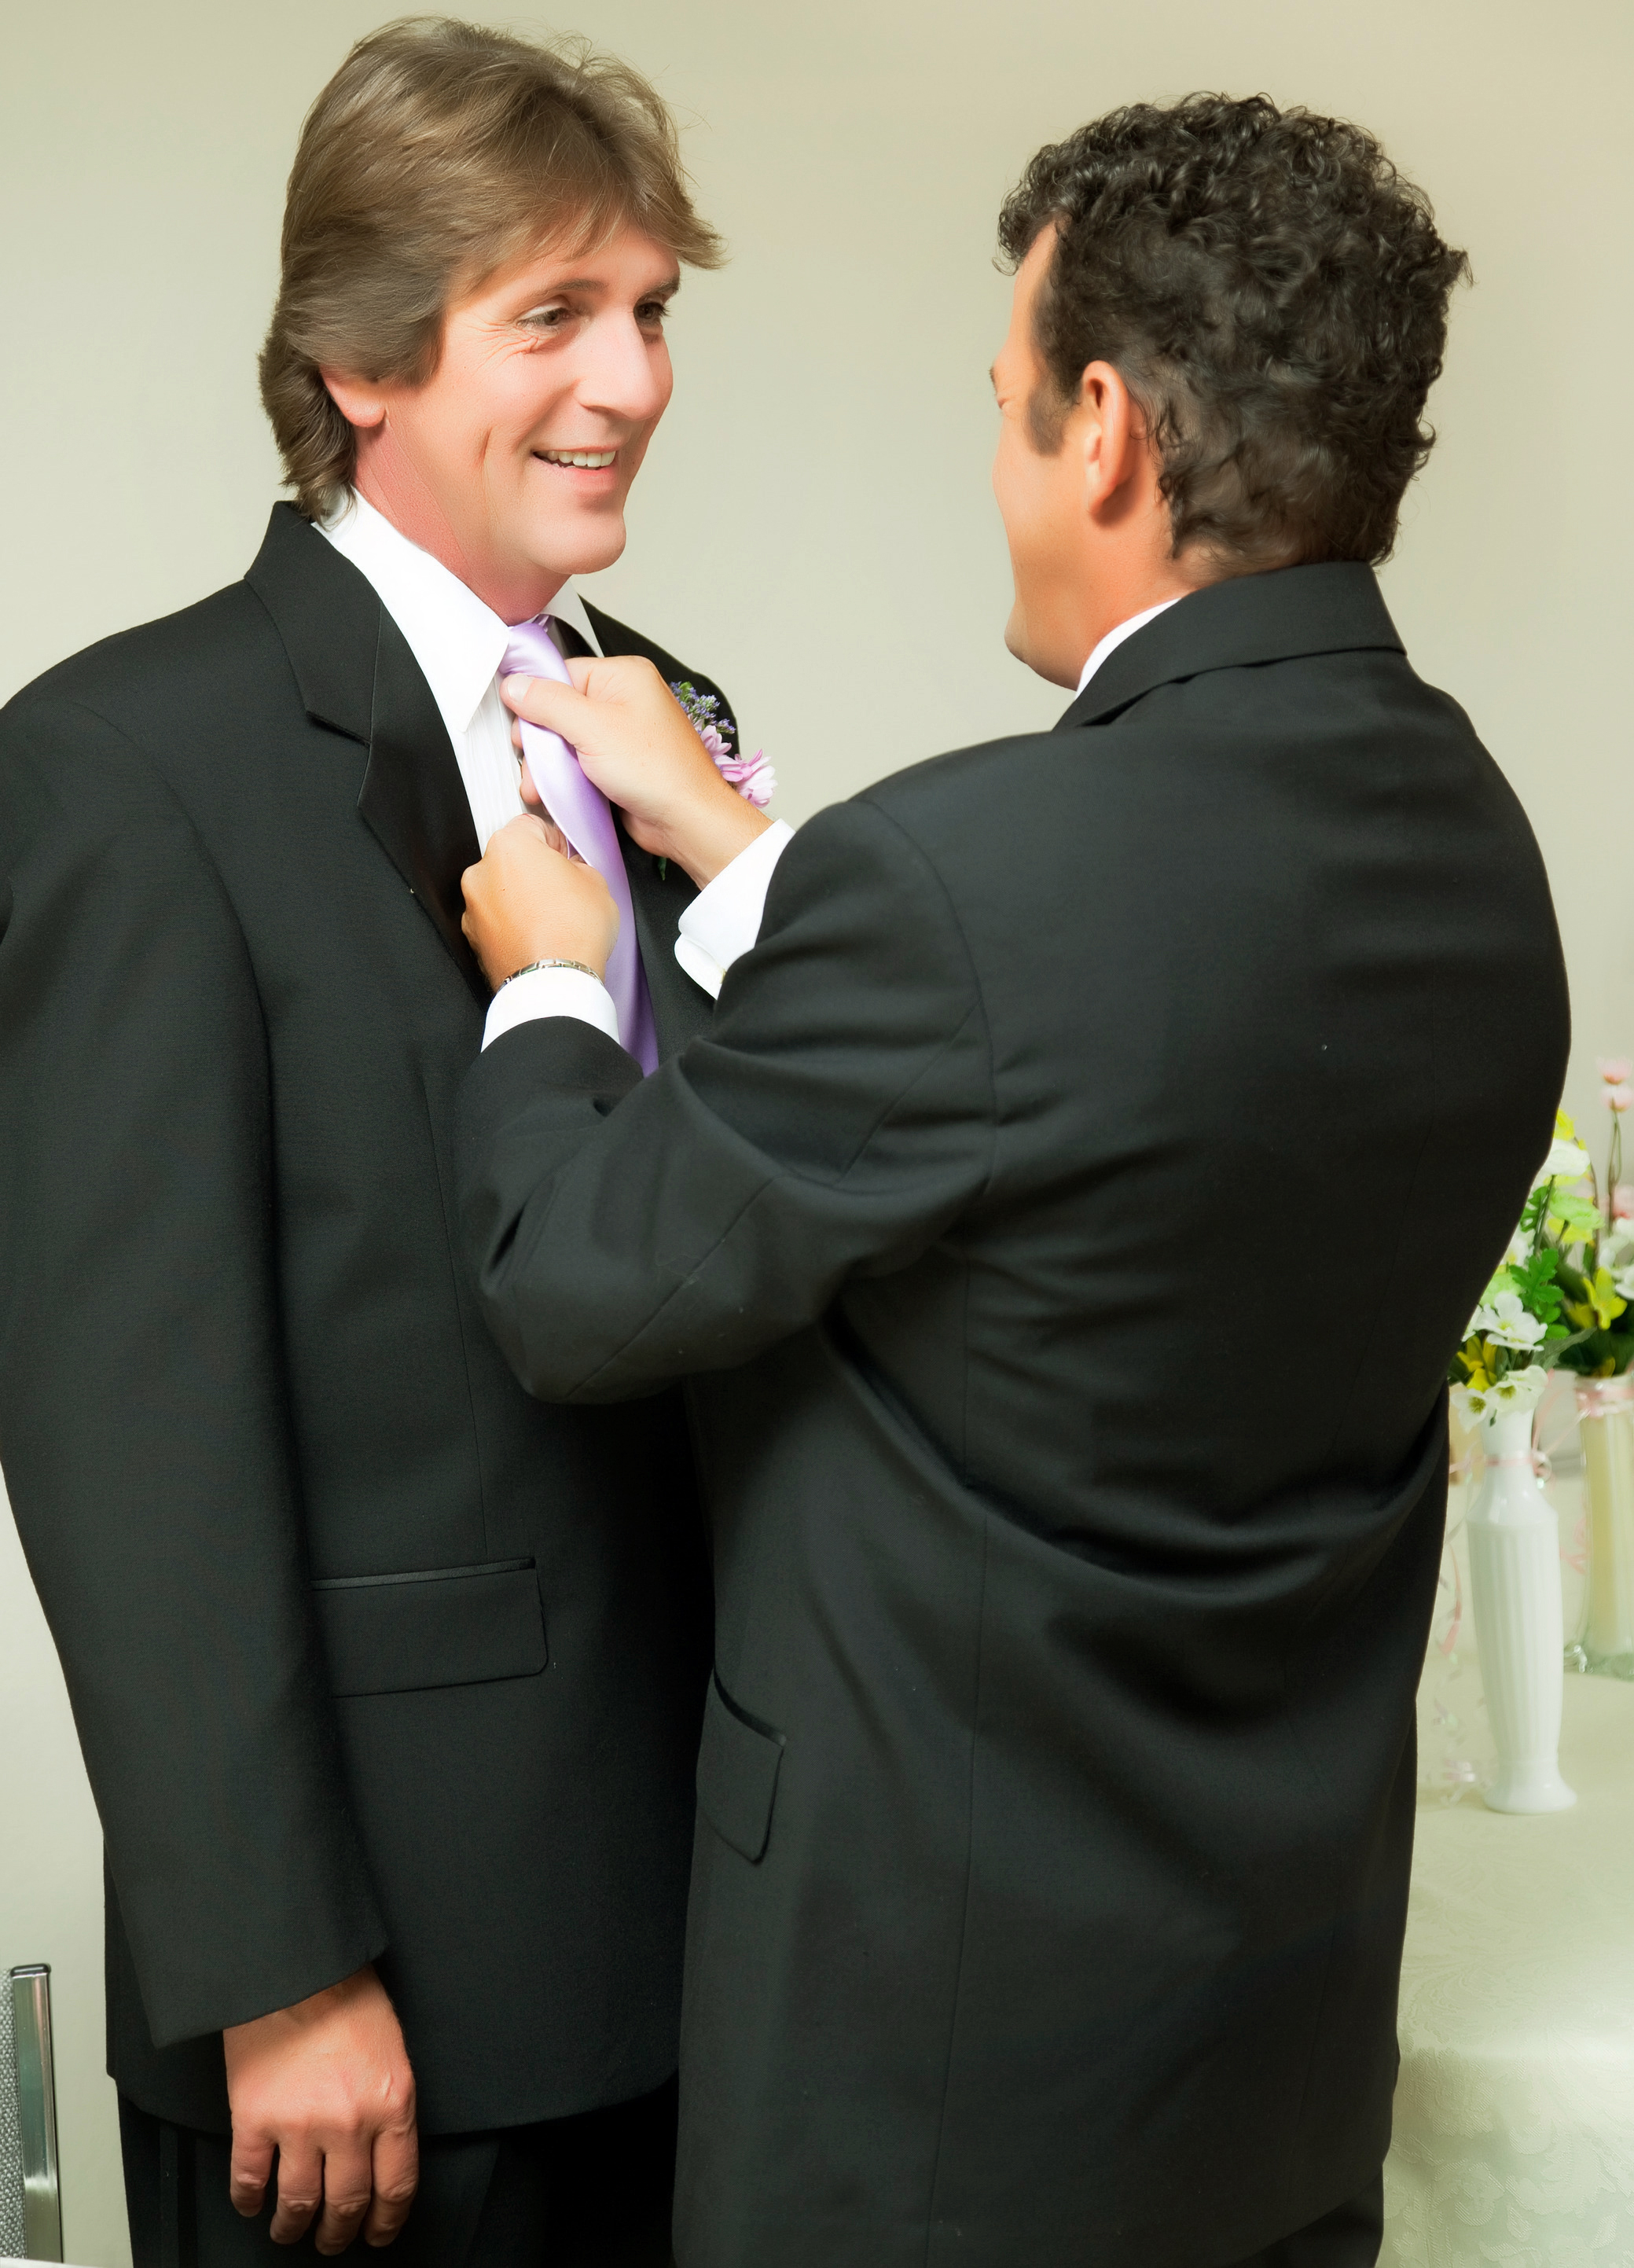 heartlandweddings-gay-wedding-straightening-the-tie-l.jpg